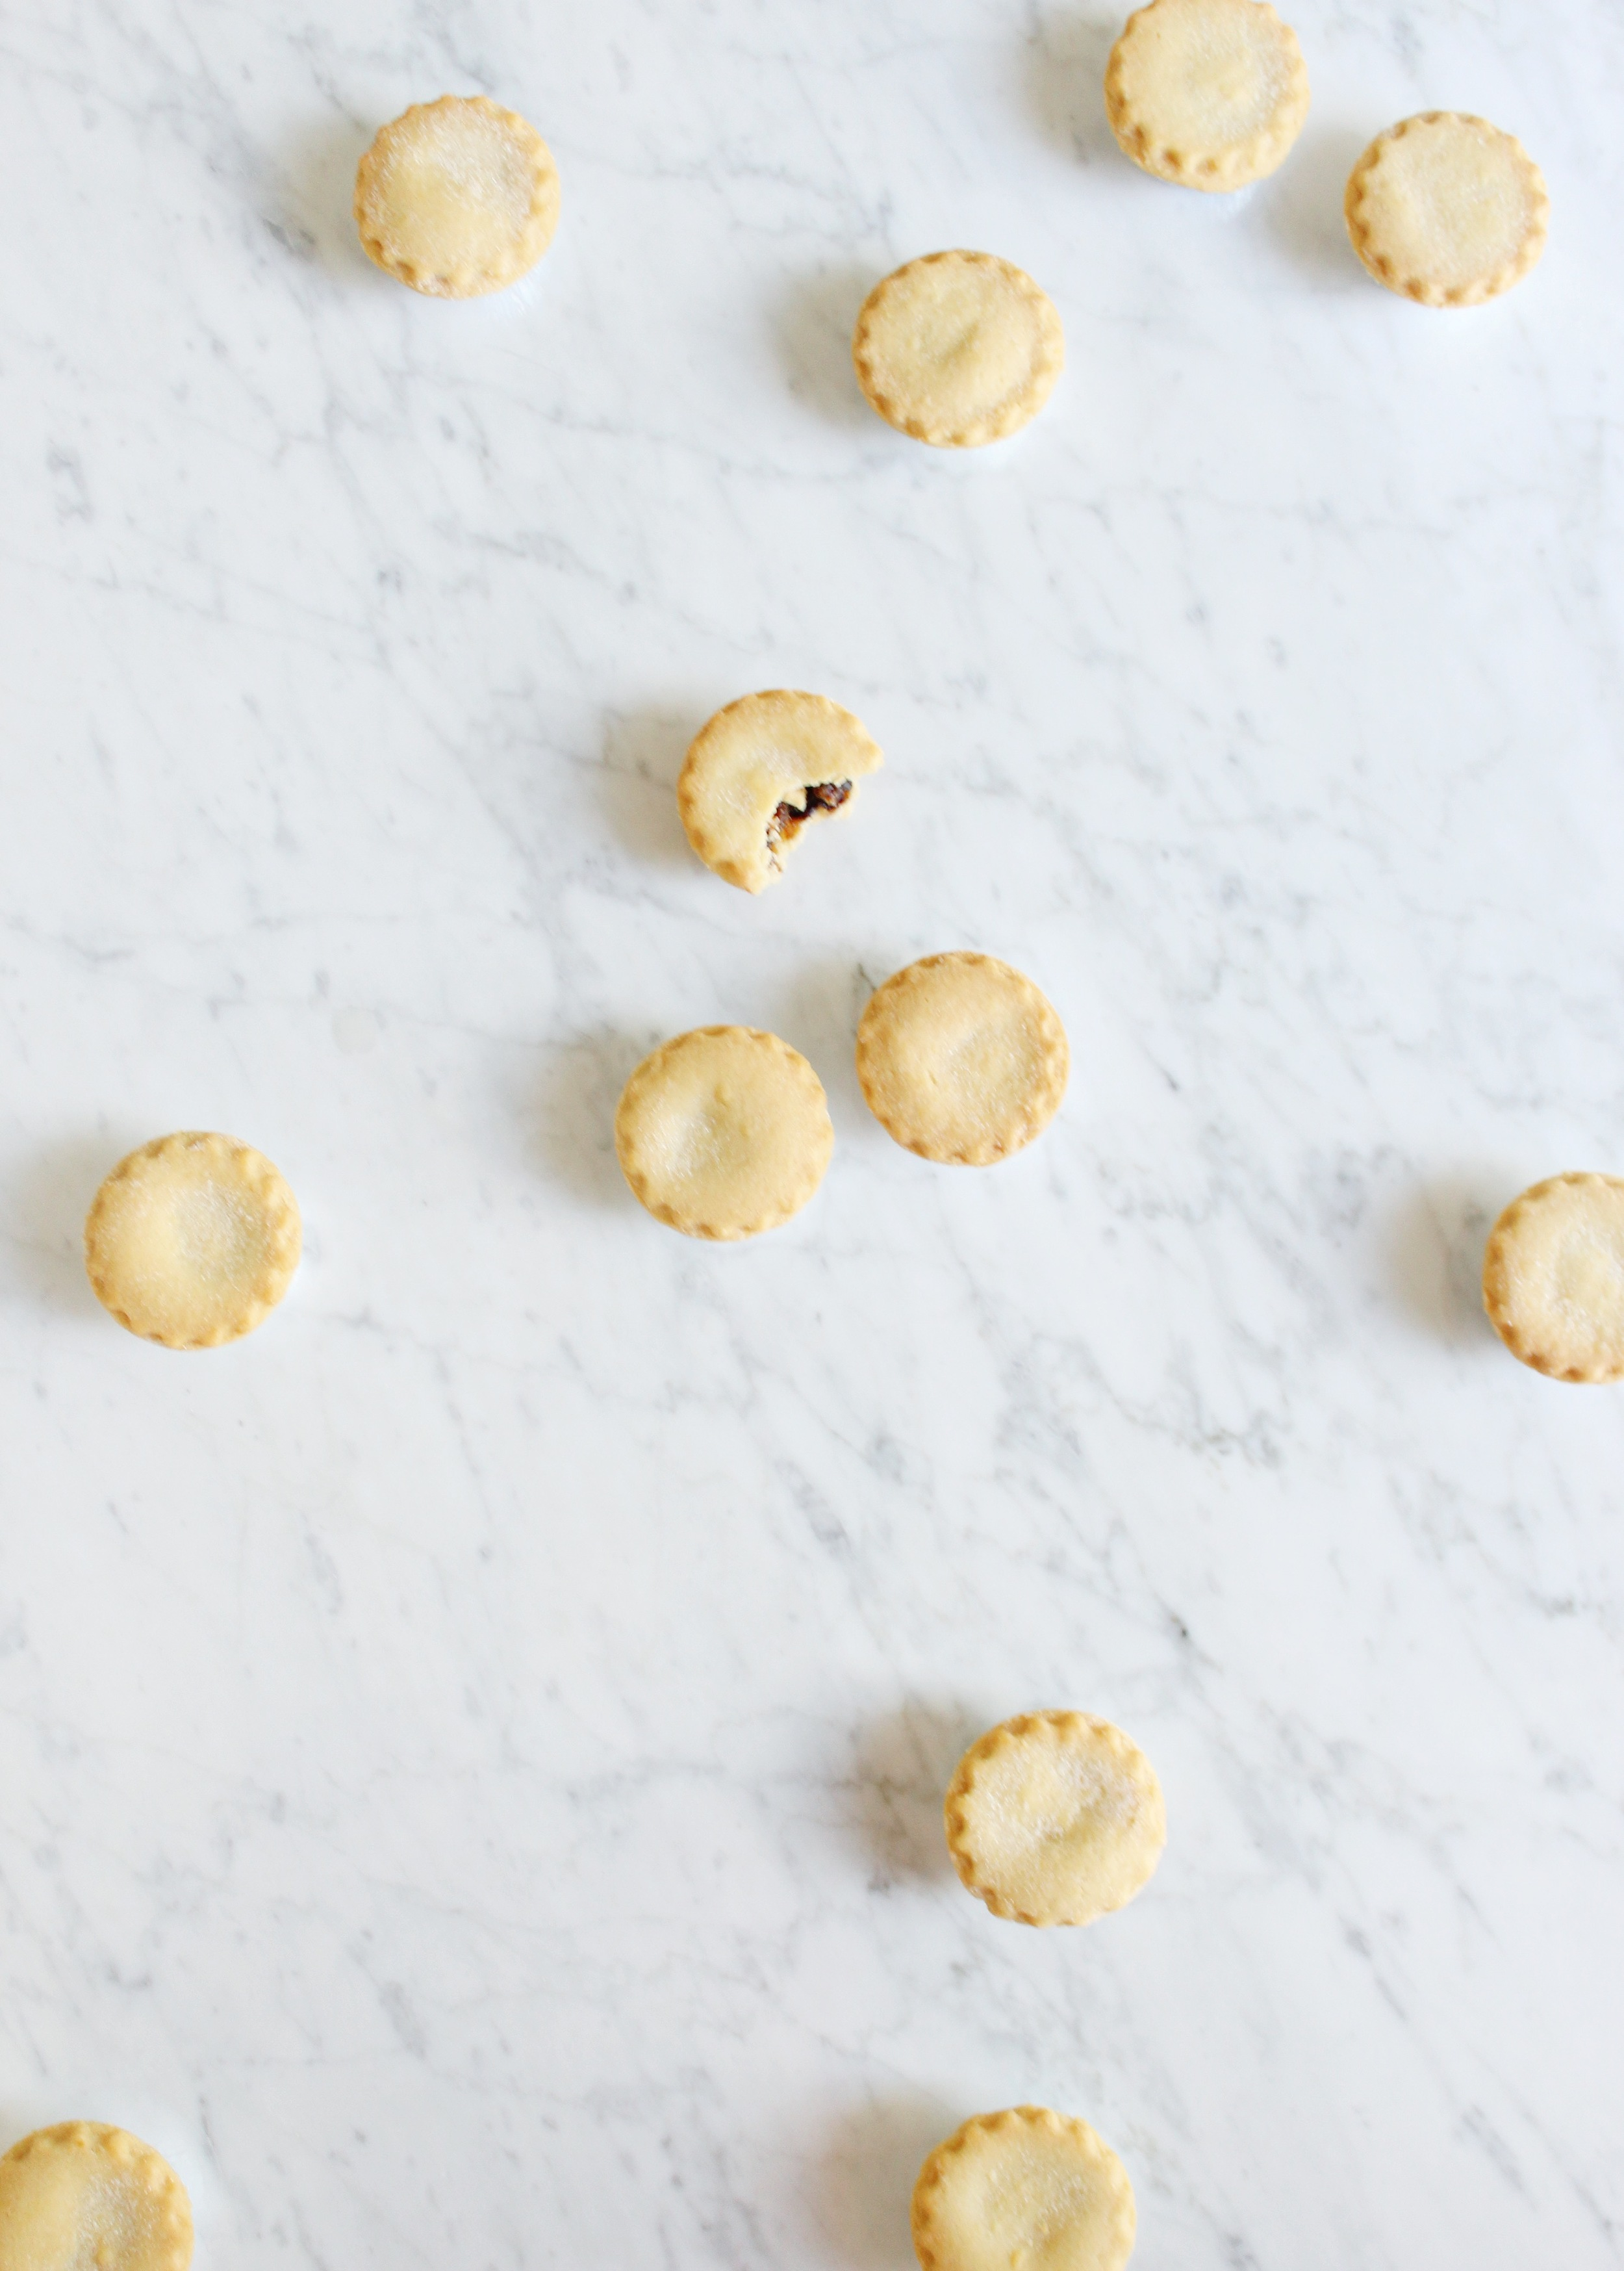 Adding mince pies to our annual holiday traditions!